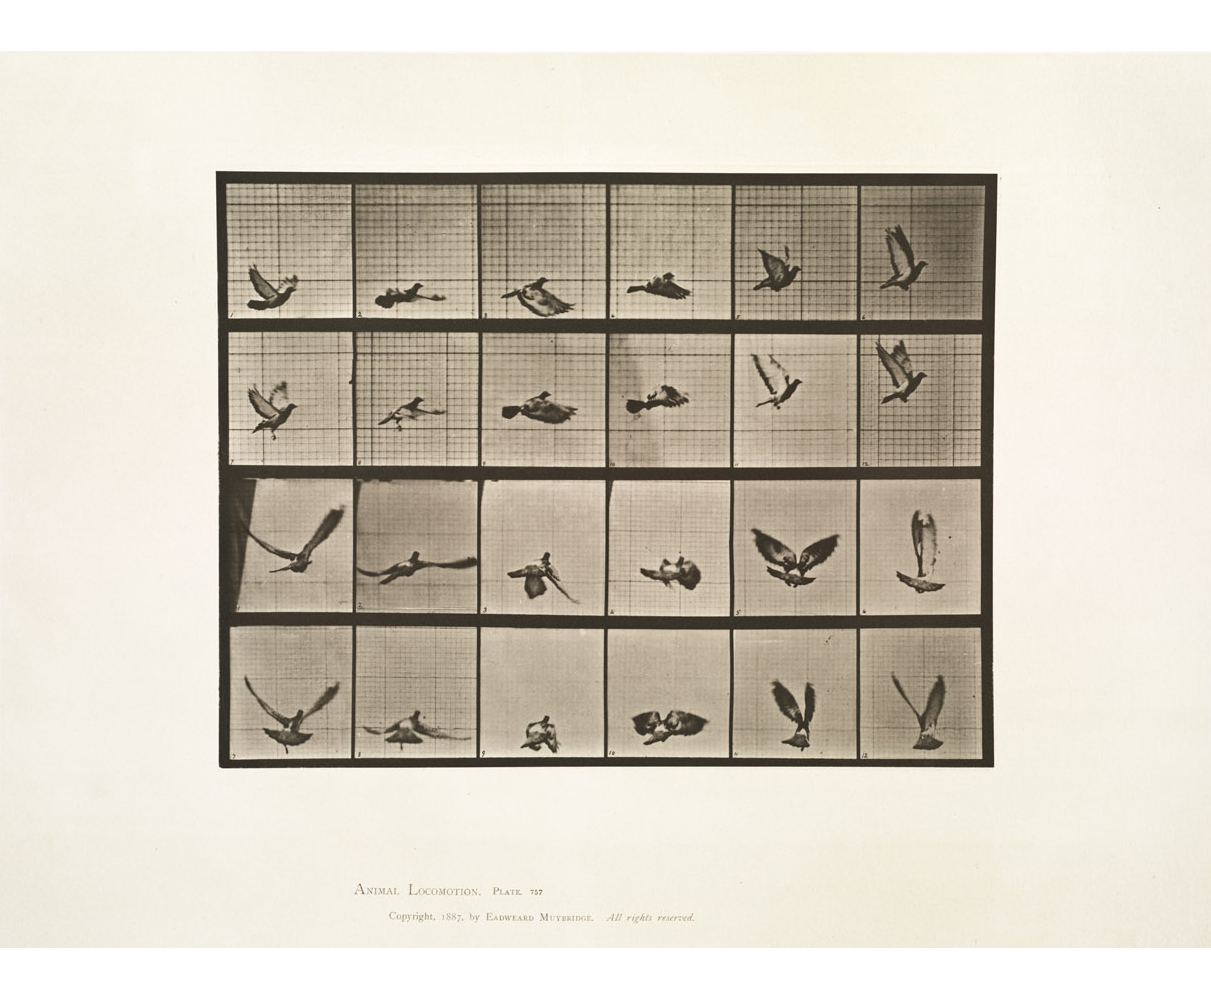 Eadweard Muybridge, Animal Locomotion, Plate 757, (Pigeon flying), 1887, collotype, 12.5 x 9 .5 inches, price on request